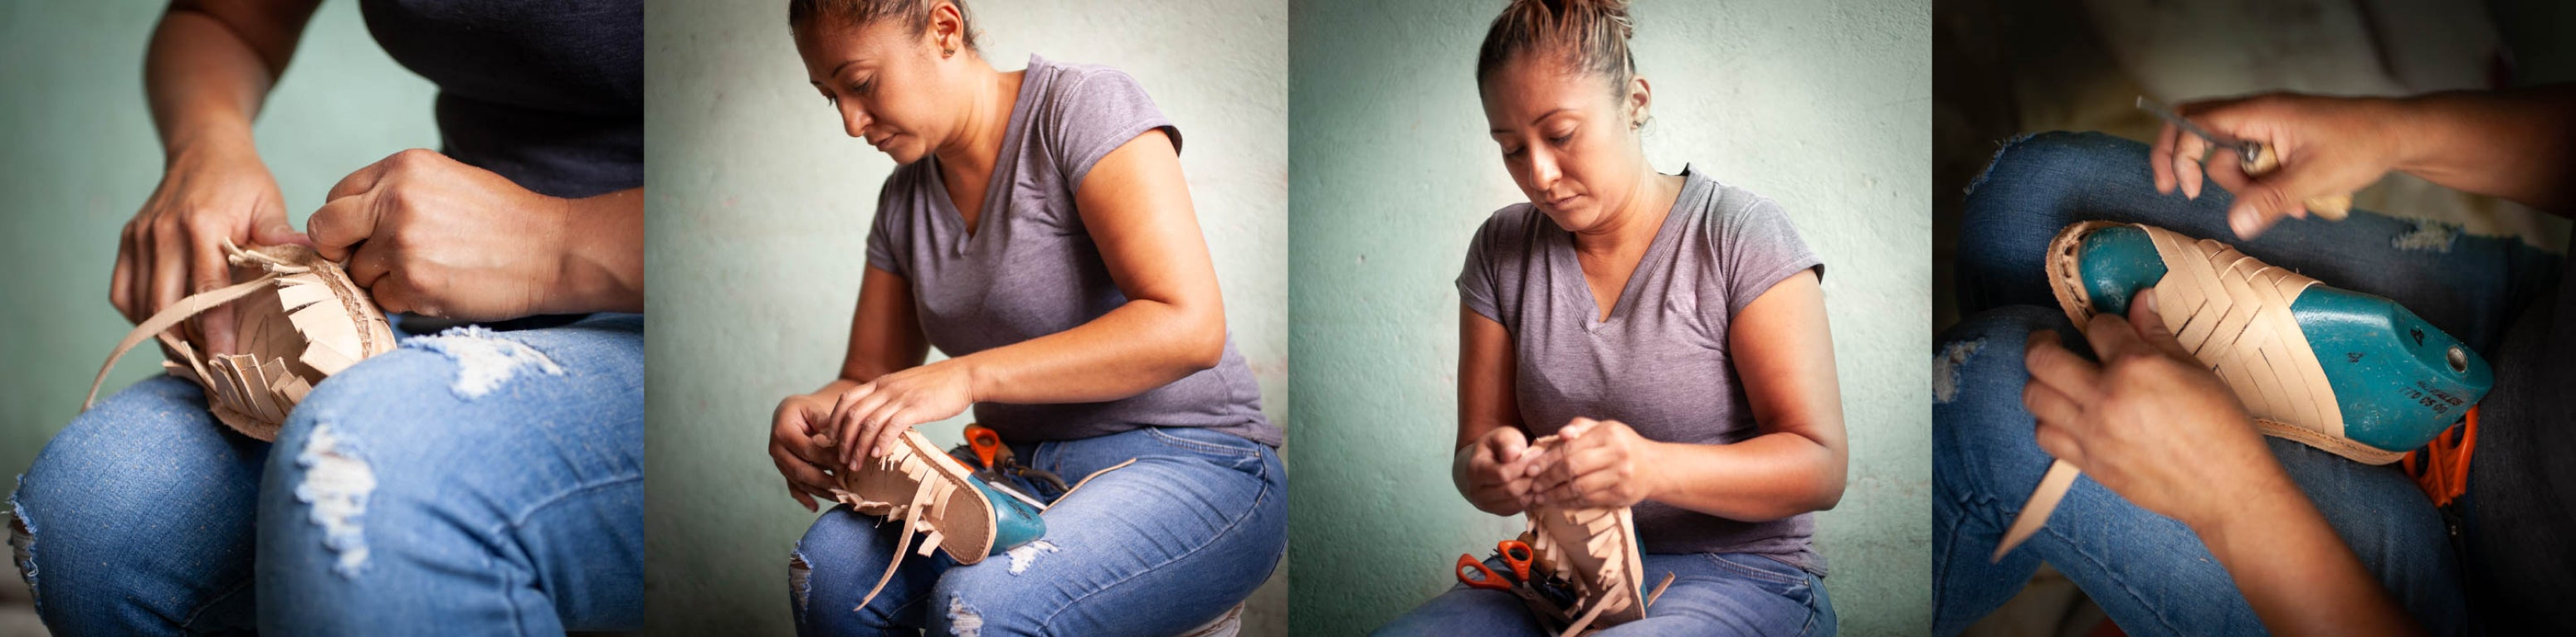 PALAPAS assembled by our  skilled team of female artisans from Michoacan, Mexico